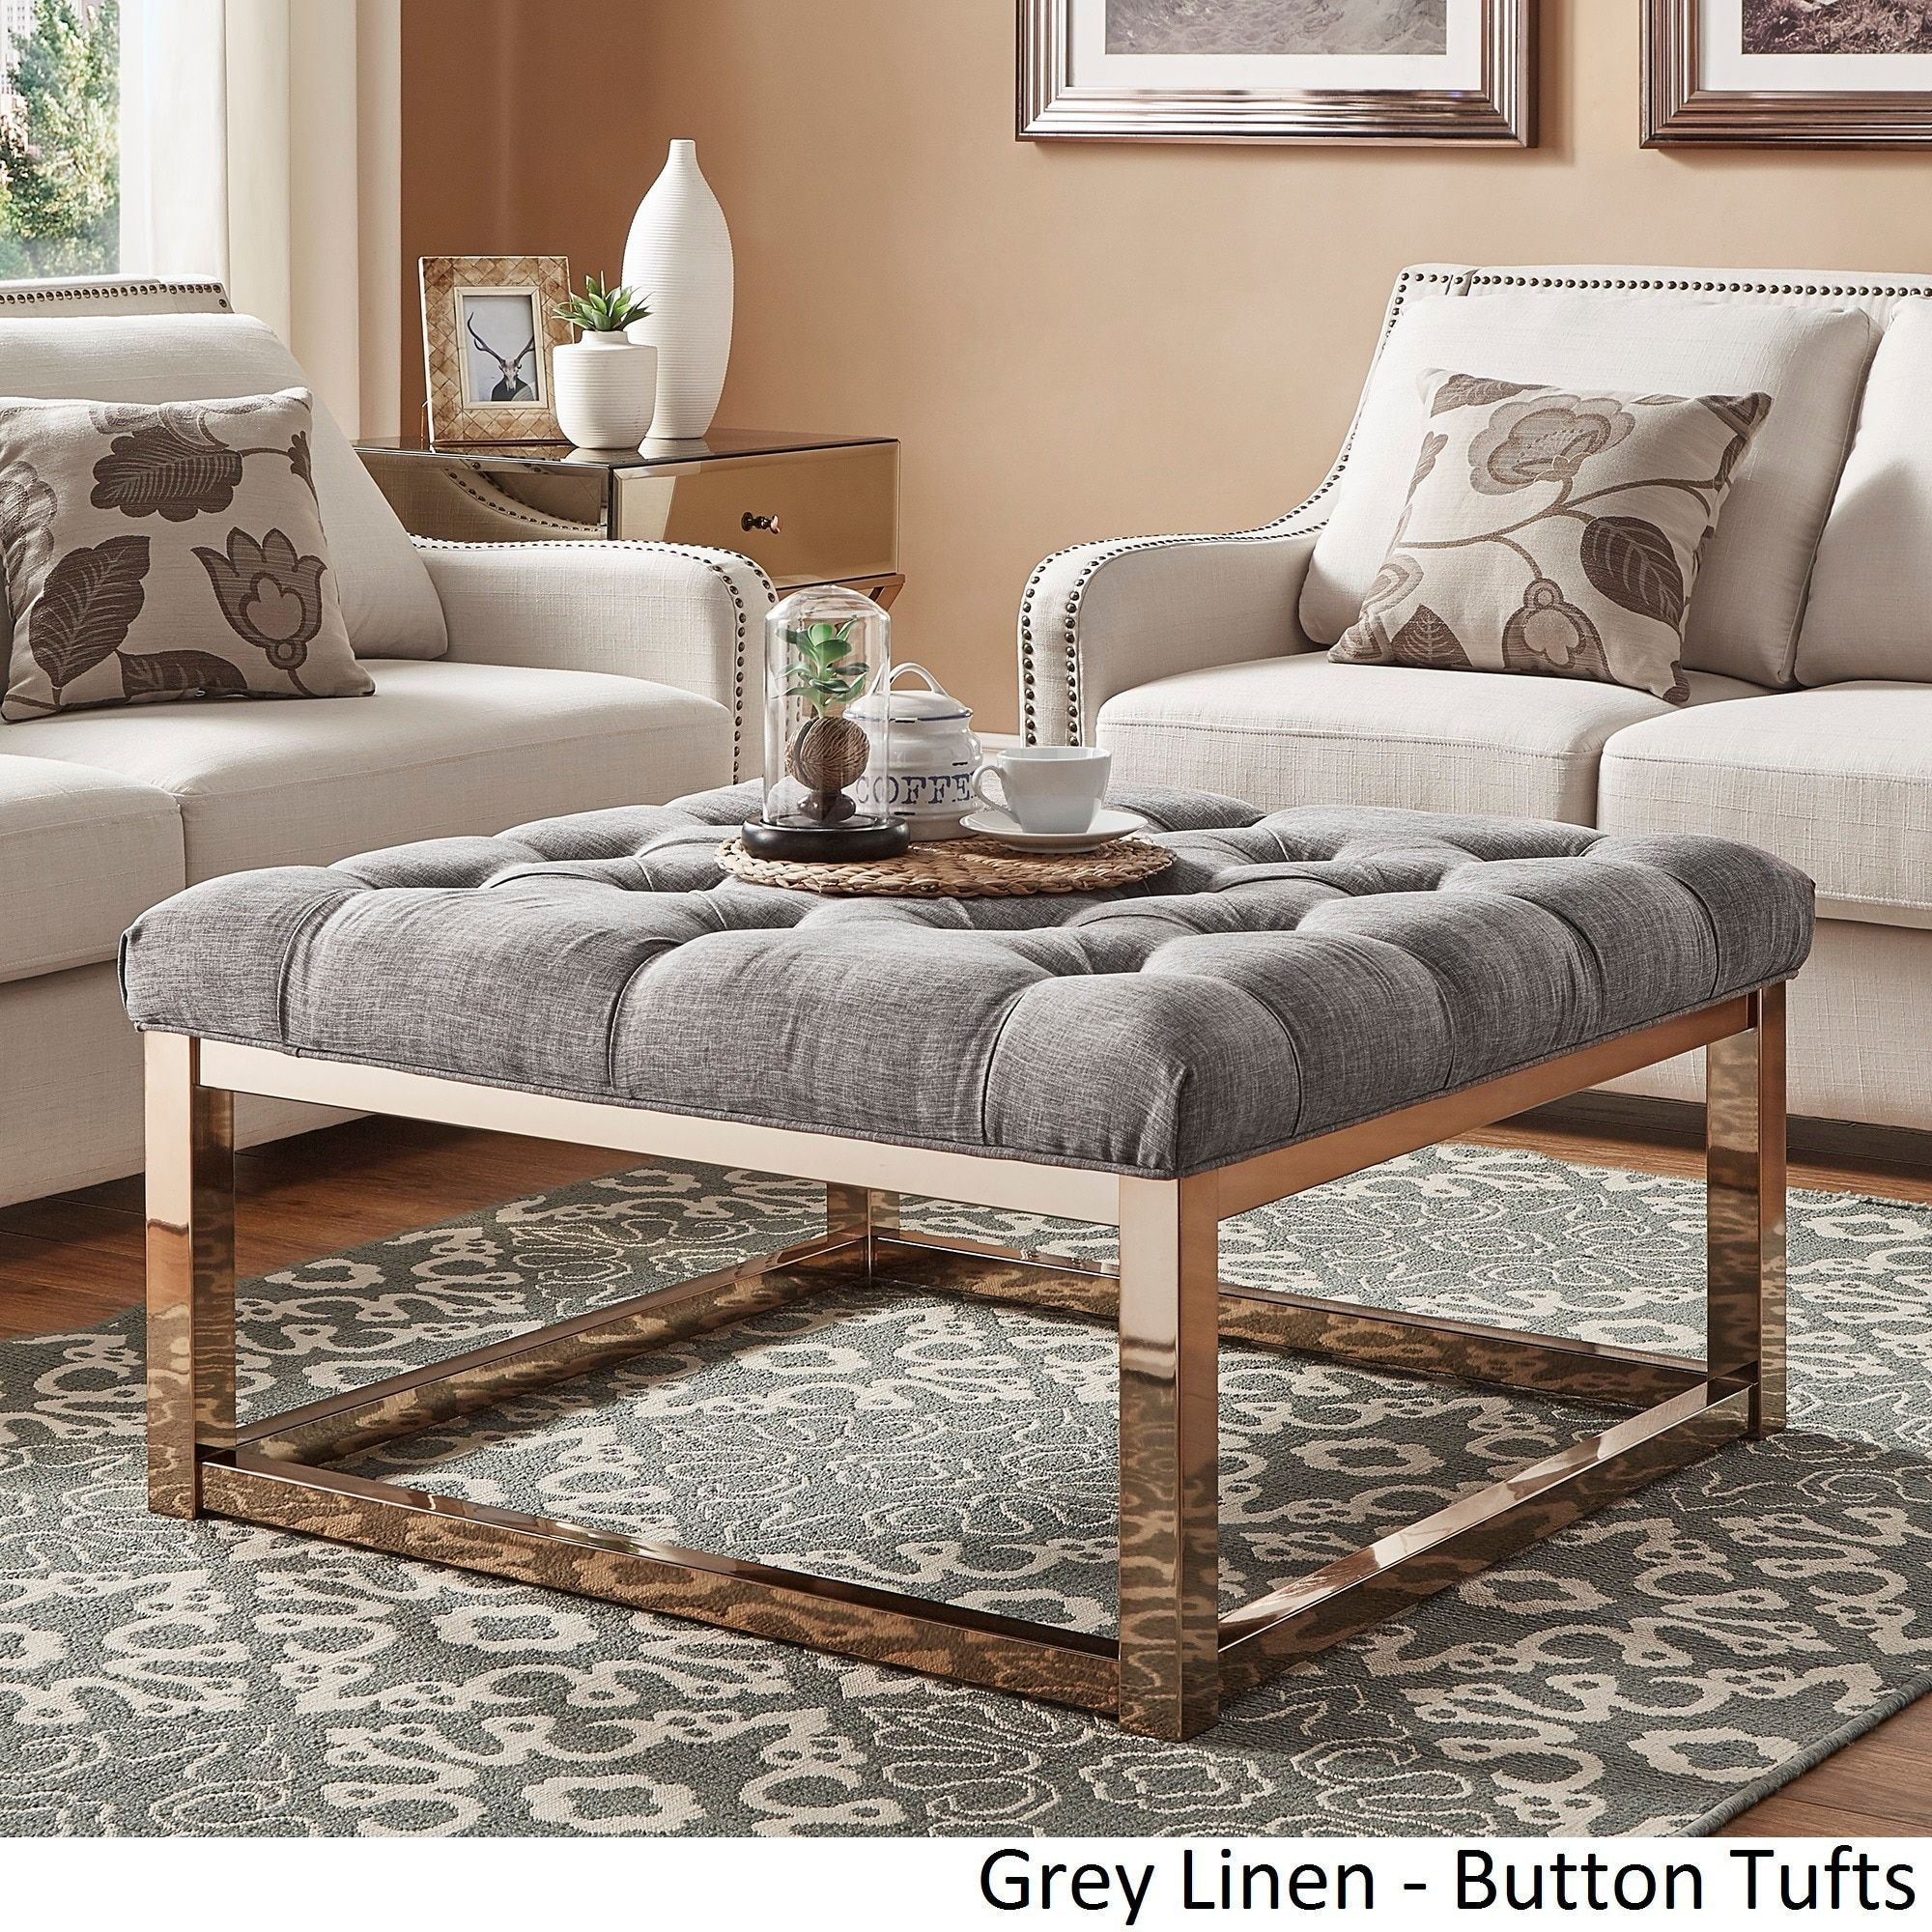 Solene Square Base Ottoman Coffee Table - Champagne Gold by Inspire Q  ([Dark Brown PU]- Dimpled Tufts)